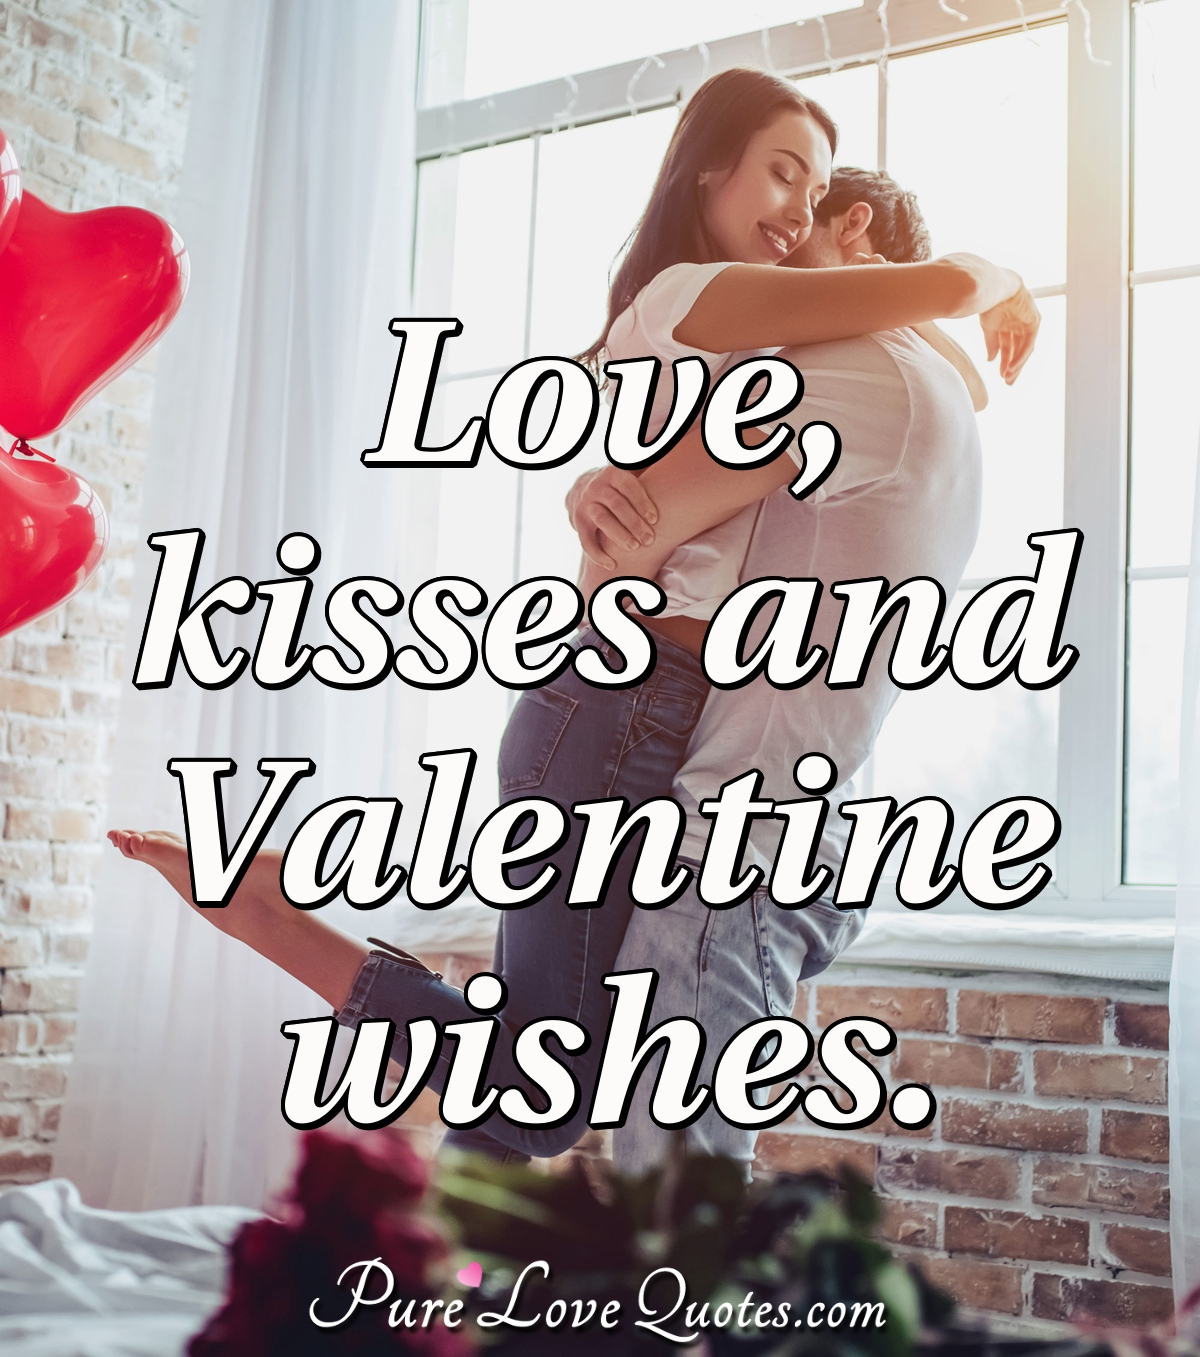 Love, kisses and Valentine wishes. - Anonymous